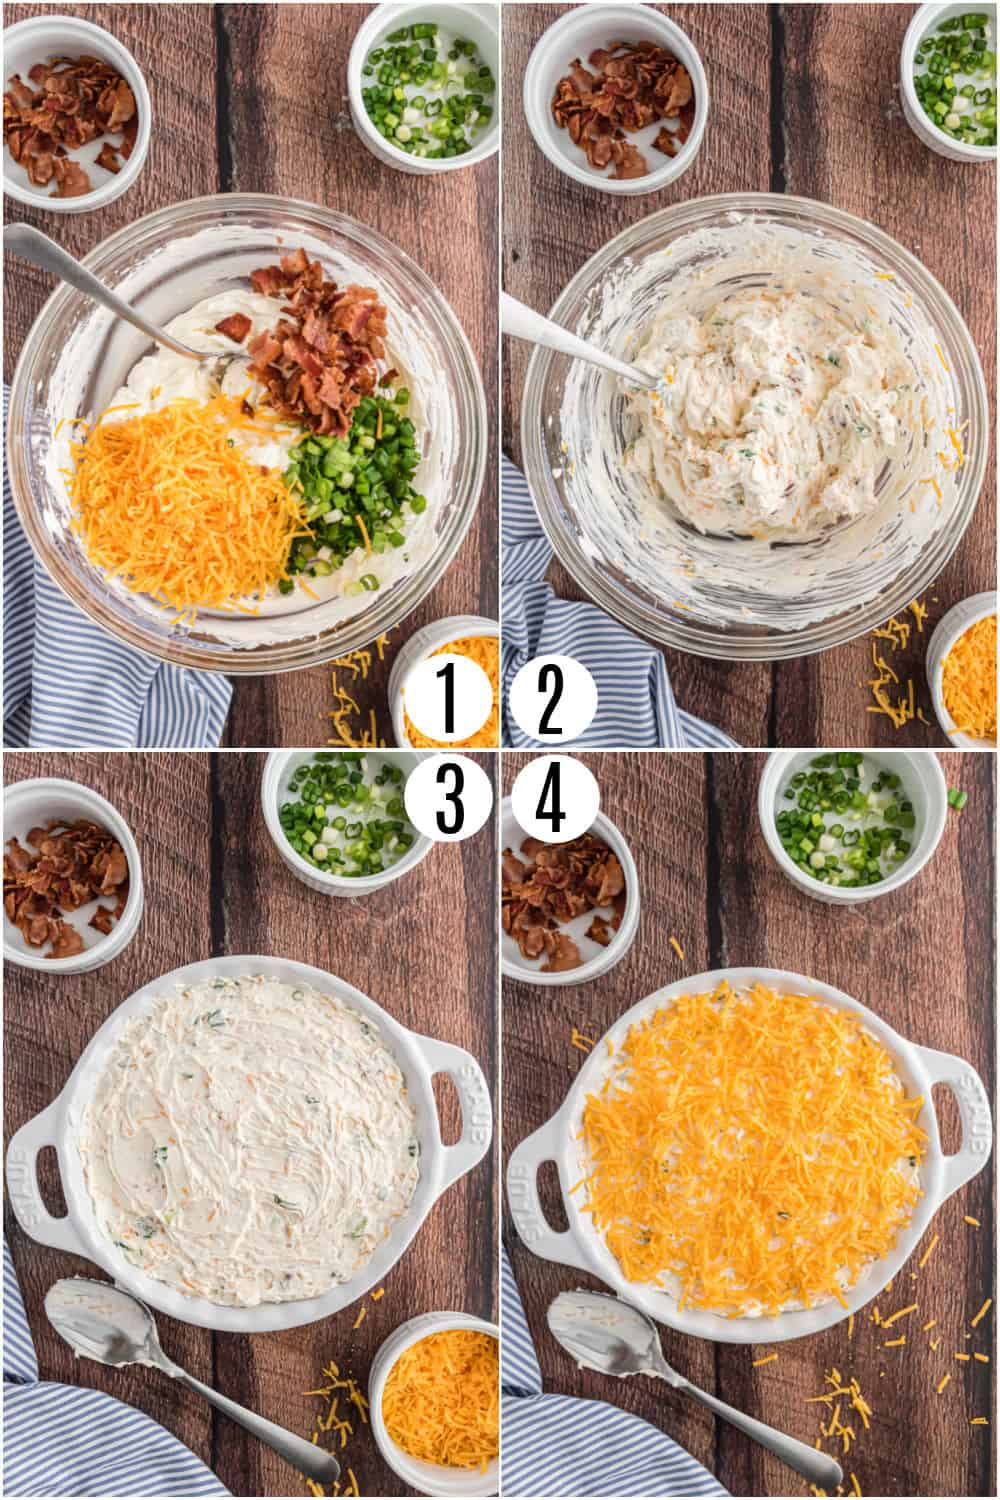 Step by step photos showing how to make potato chip dip.